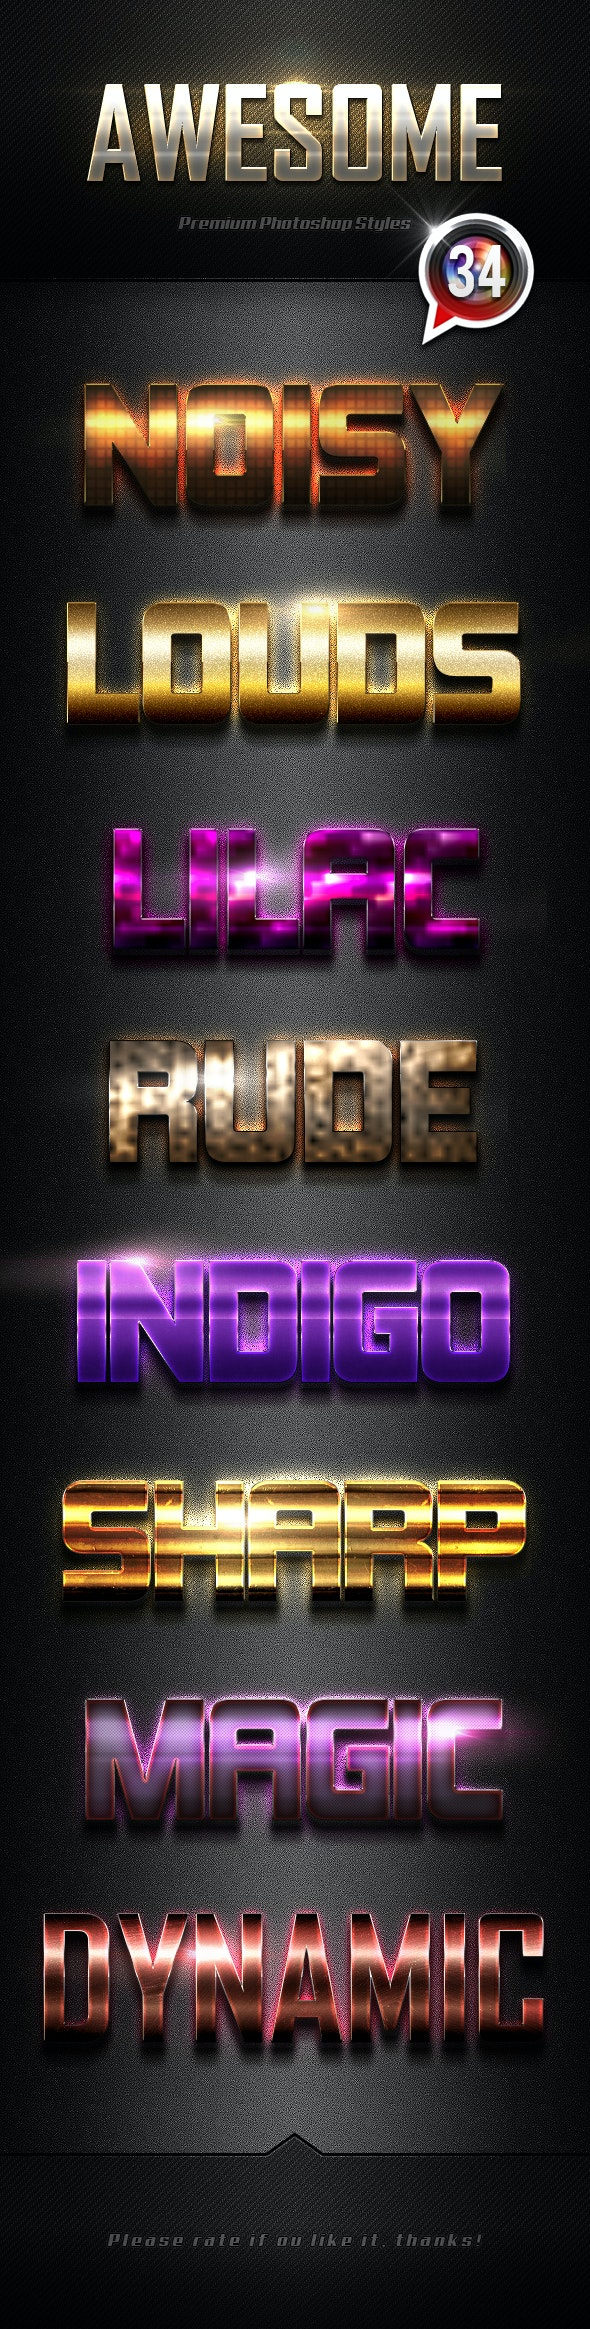 Photoshop Text Effects Vol.34 - Text Effects Styles